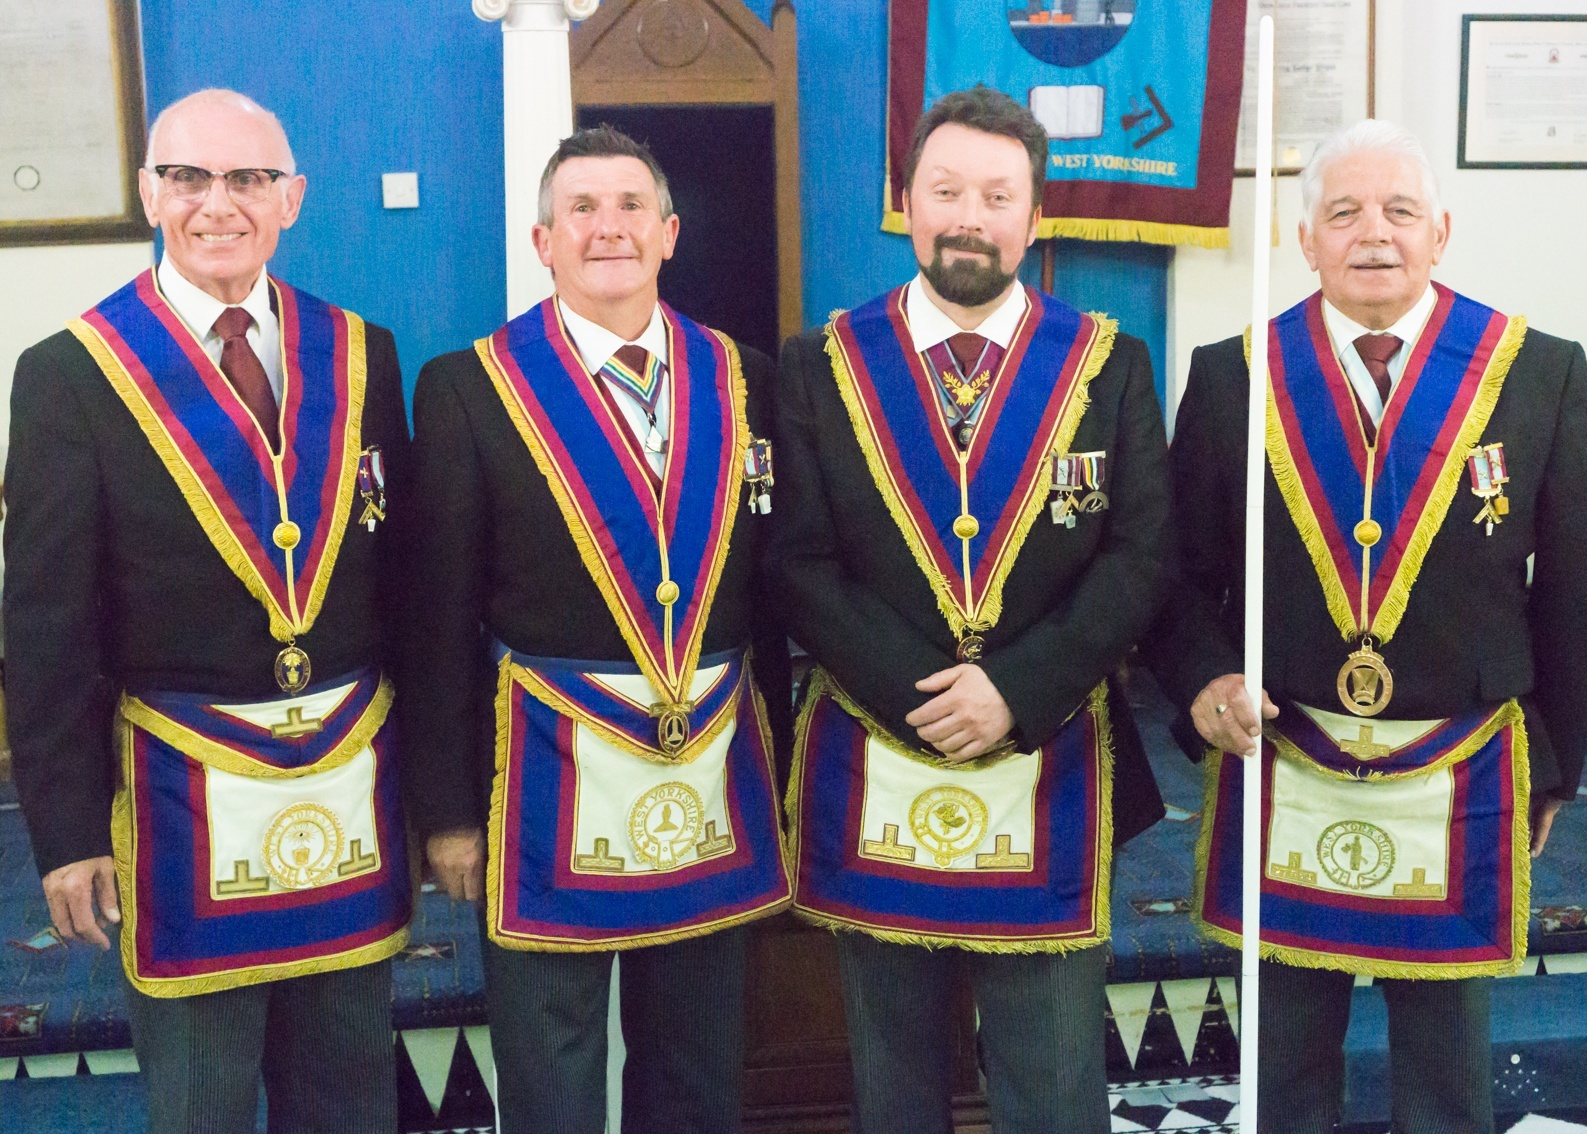 Success breeds Success at Aireferry Lodge of Mark Master Masons No.1769, Installation meeting May 2019.